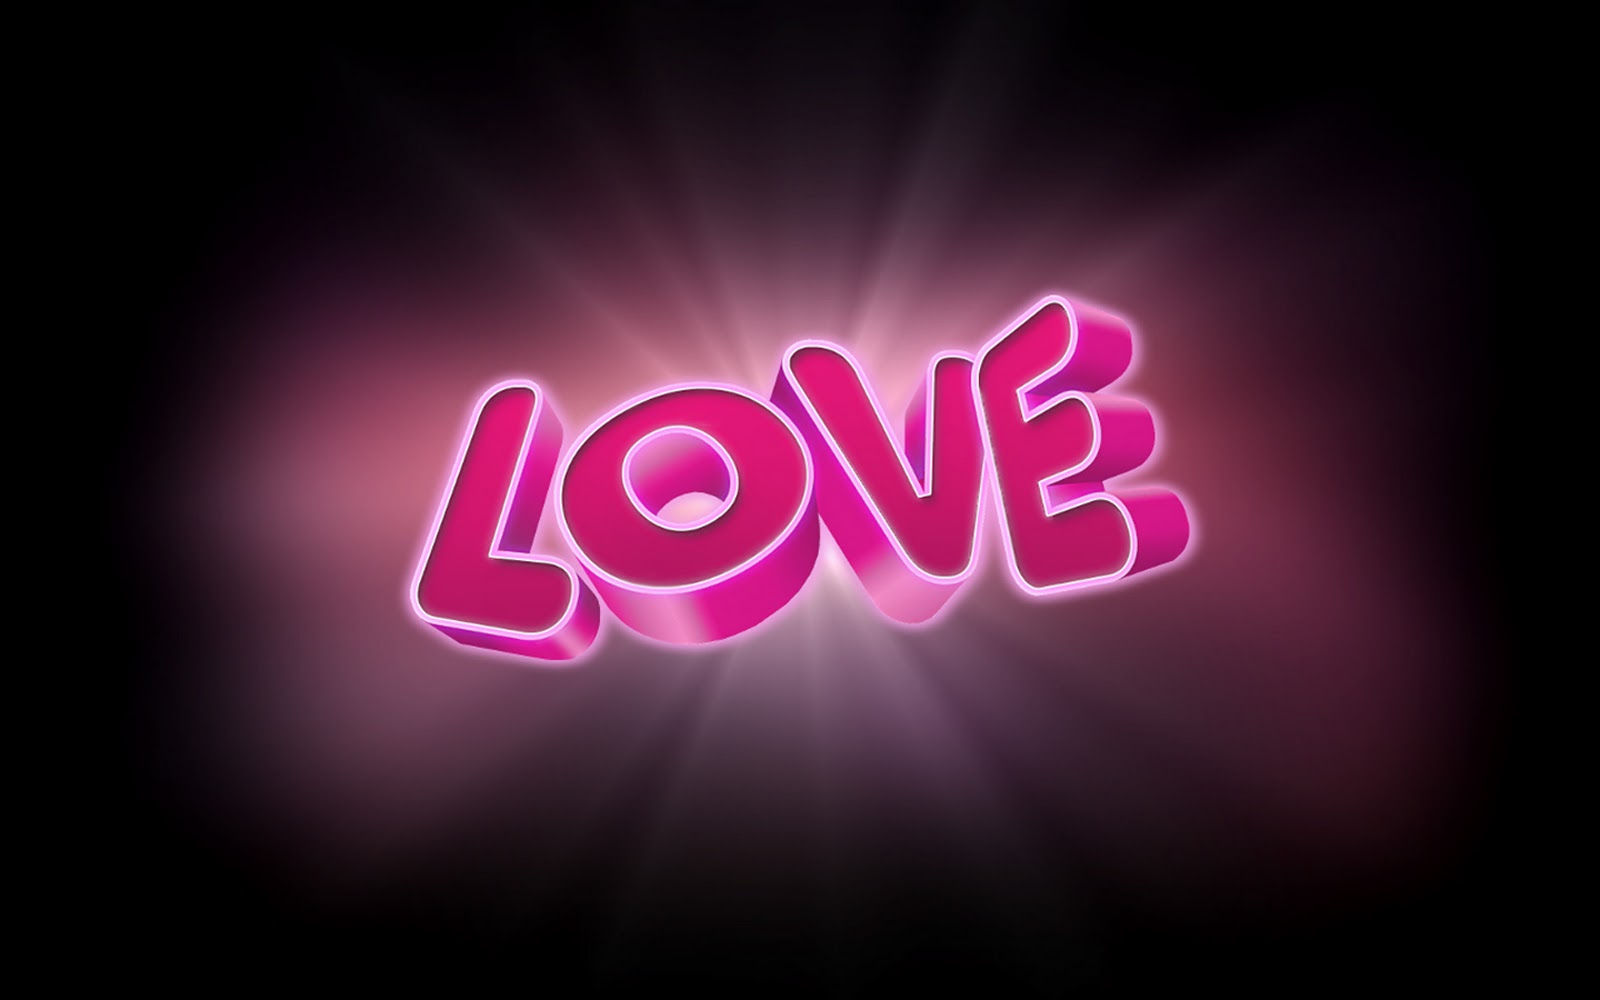 Love Wallpapers New 2014 : Love Wallpapers 2014 - 2015 For Desktop And Mobile Happy ...